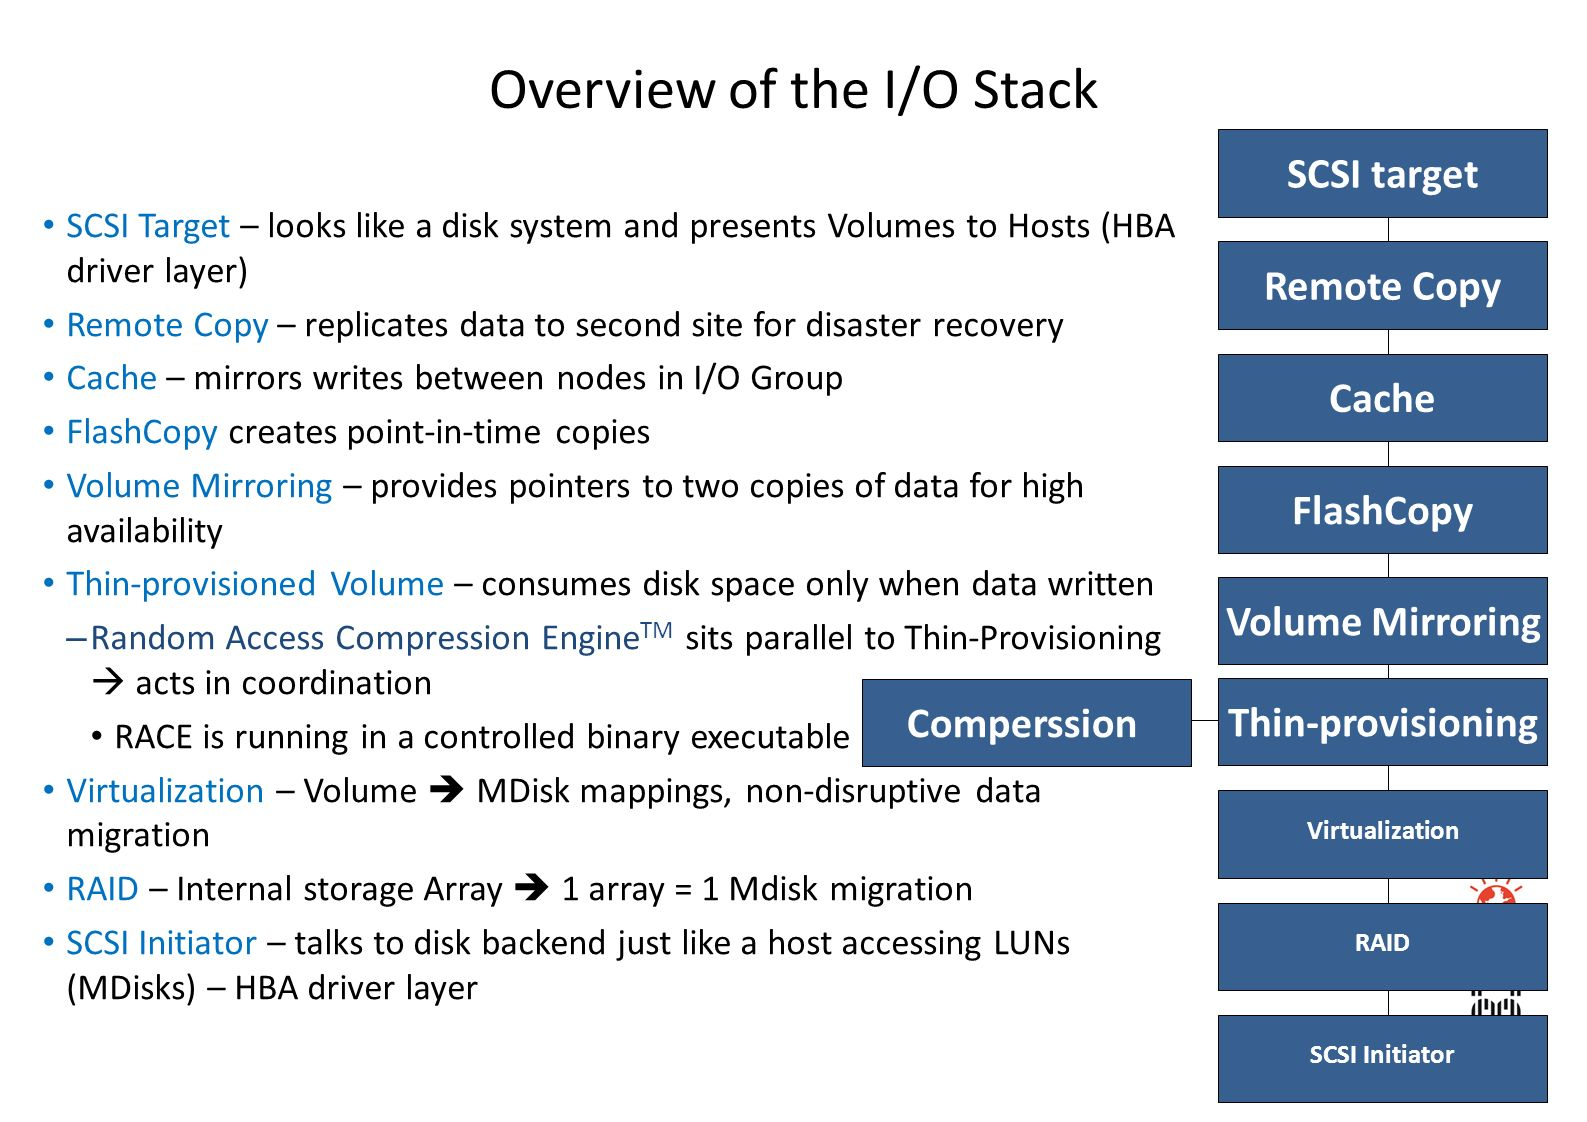 Overview of the I/O Stack